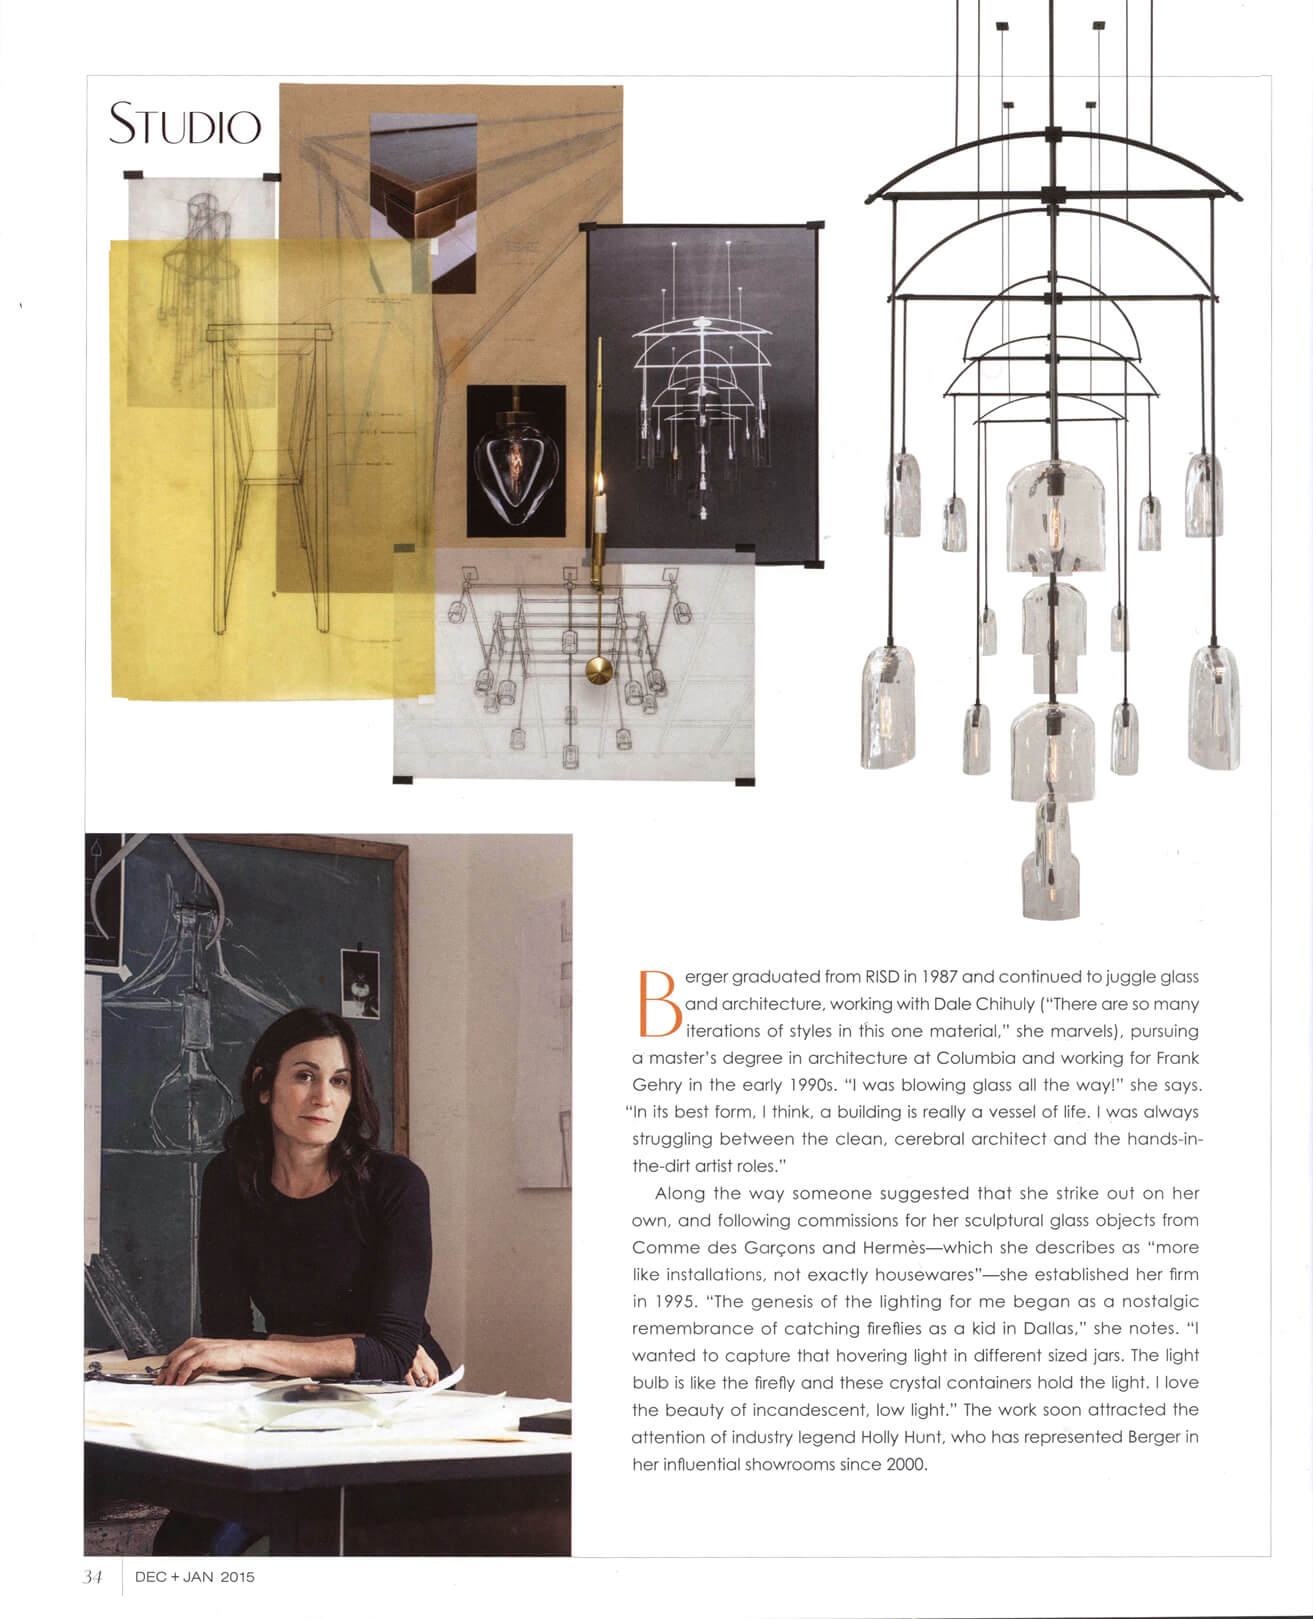 Interiors Magazine, Dec 2014/Jan 2015